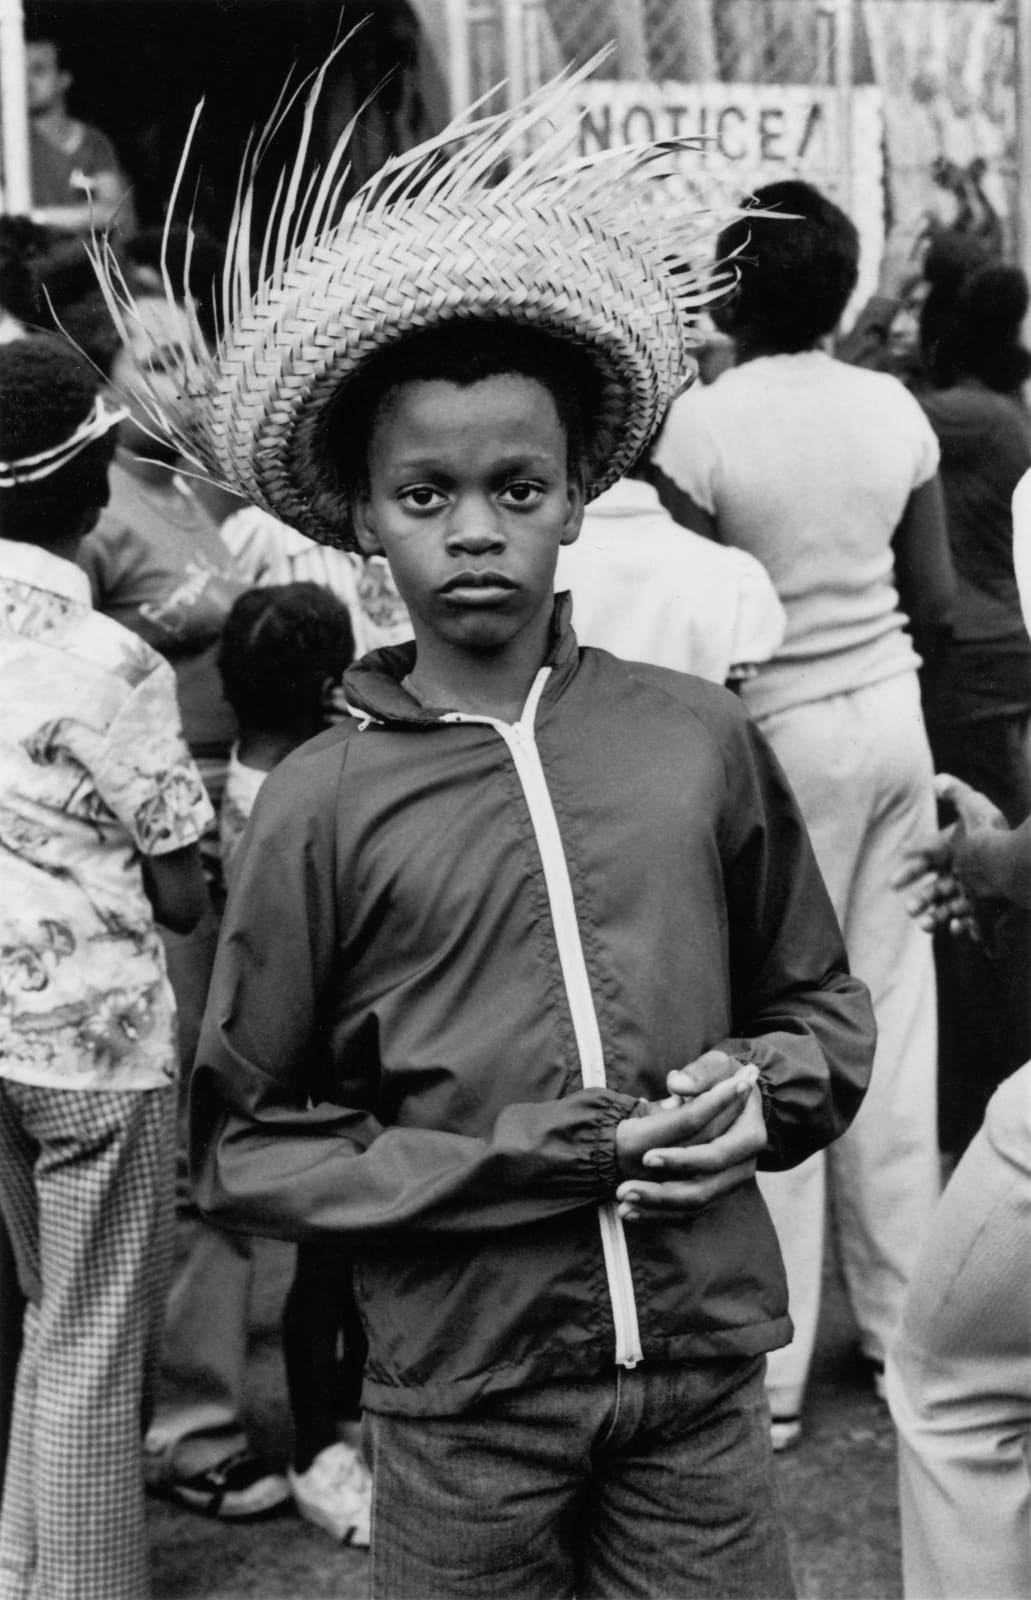 Ming Smith, Young Boy with Straw Hat, Coney Island, 1976